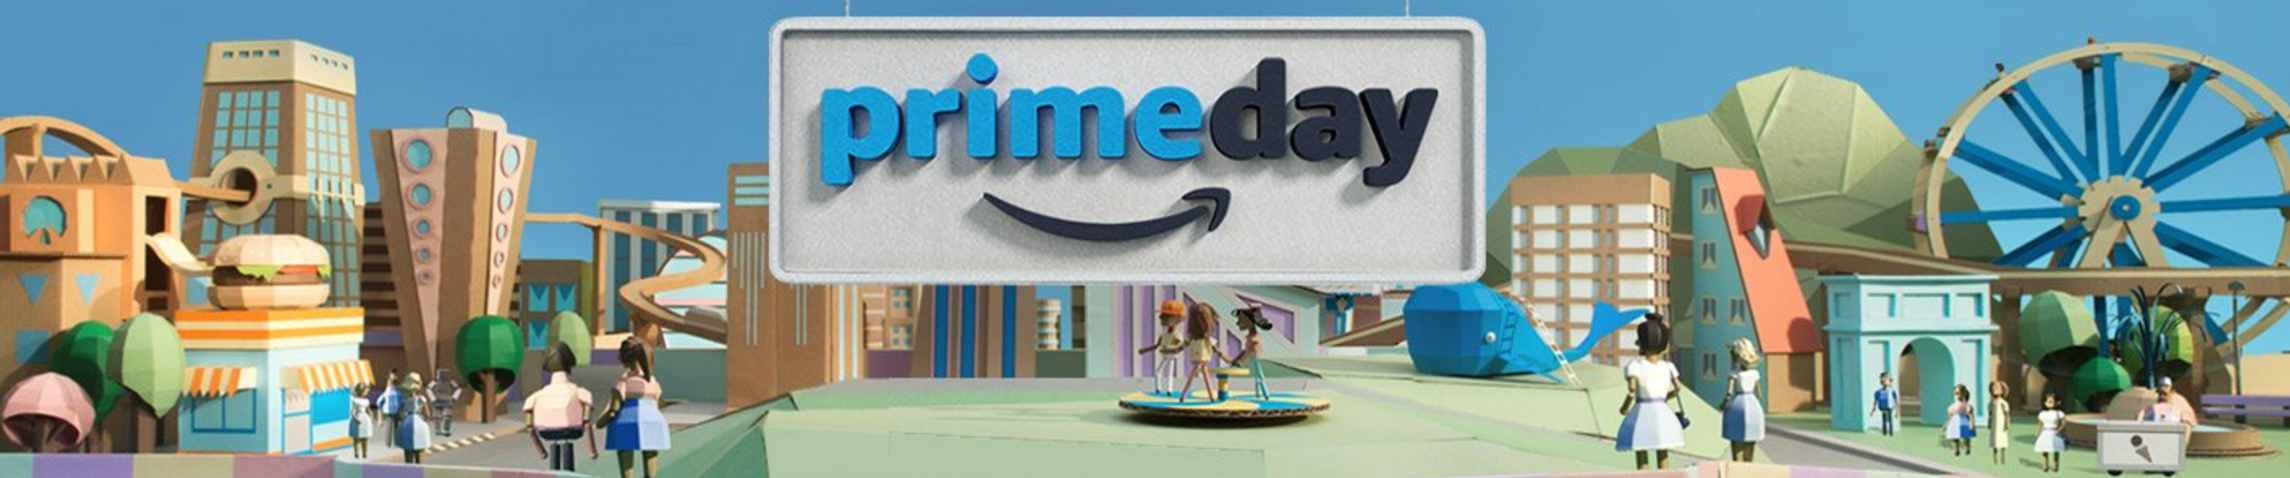 "Amazon:  This Year's Prime Day Was ""The Biggest Day Ever"" For The Company"